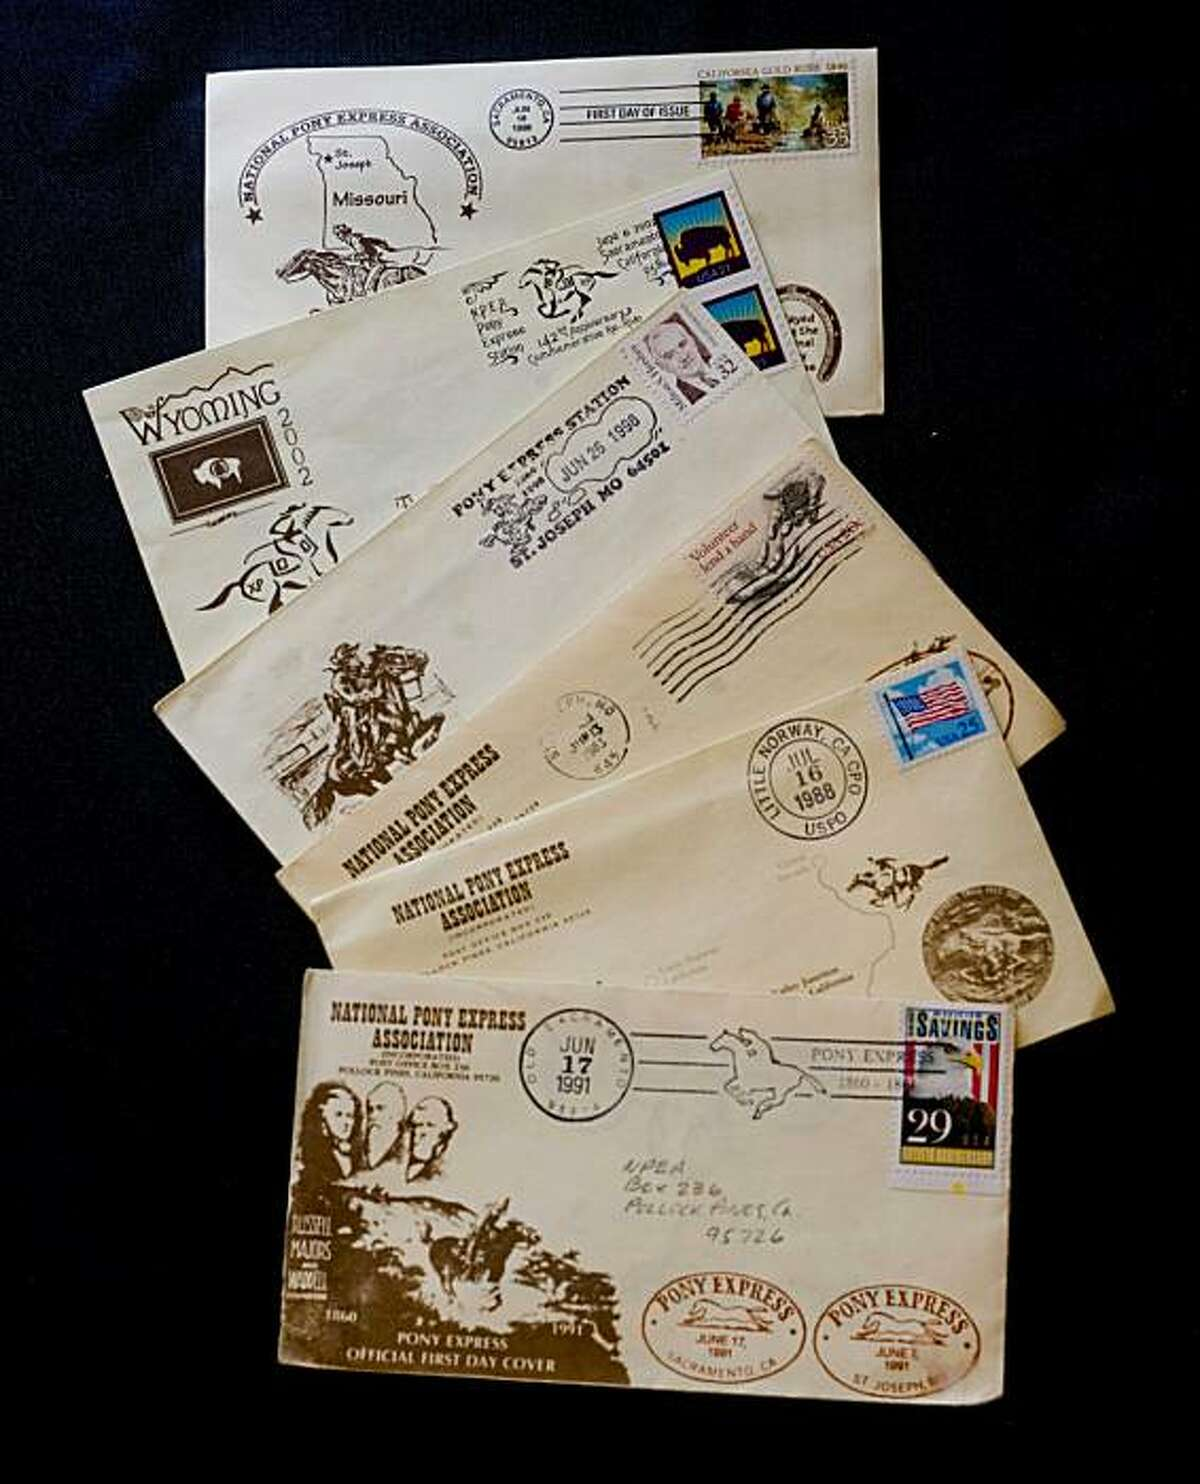 Each year, the National Pony Express Association stages a re-enactment fundraising event in which mail is carried between Sacramento and St. Joseph, Mo., by horseback. For $5, anyone can have a letter delivered by Pony Express. A different cachet, or commemorative postmark, is issued each year. It's too late to send a letter in this year's event, but information on how to do so next year will be available at the association's website, www.pxhomestation.com. Letters sent via the original Pony Express arenow worth a fortune; one recently sold at auction for $460,000.